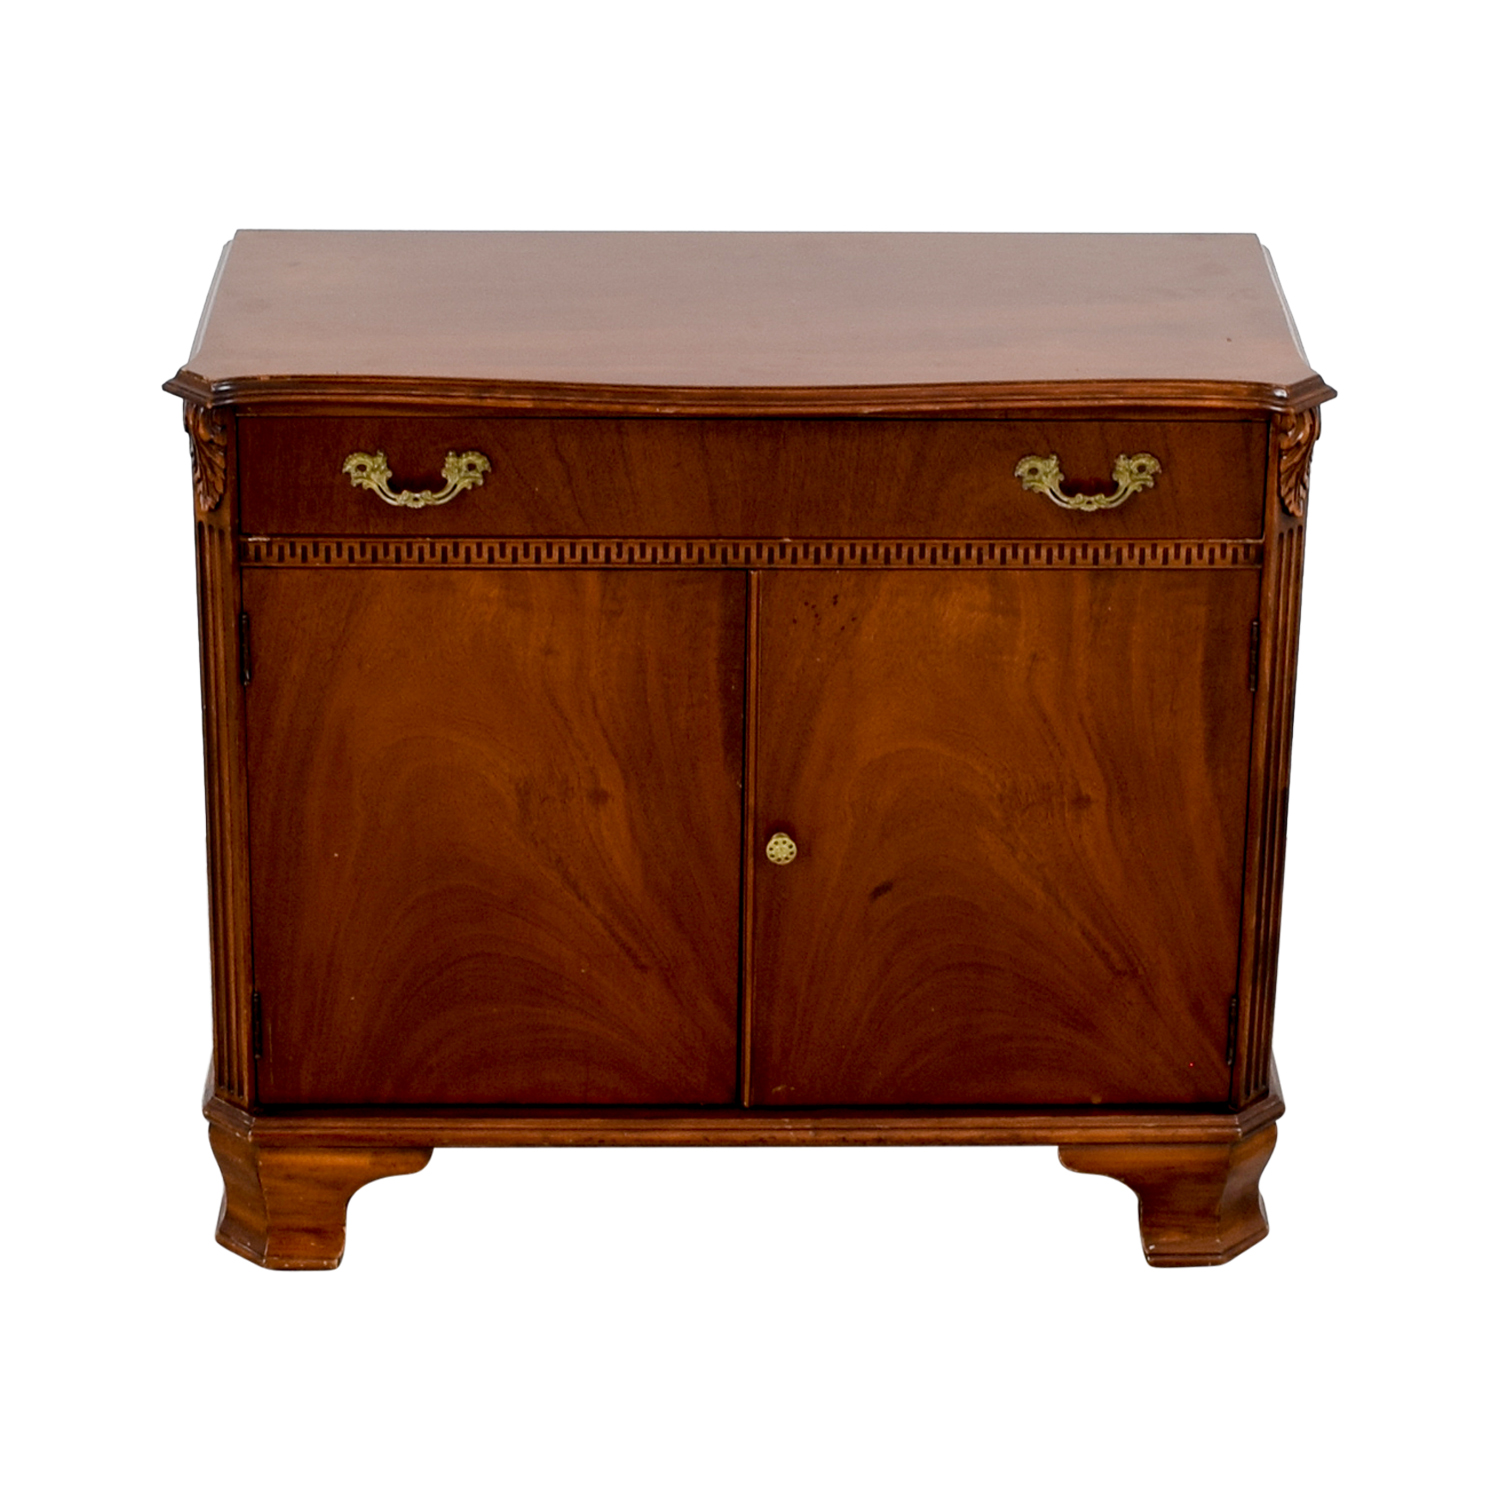 John Stuart Inc. Antique One-Drawer with Storage Sideboard / Storage